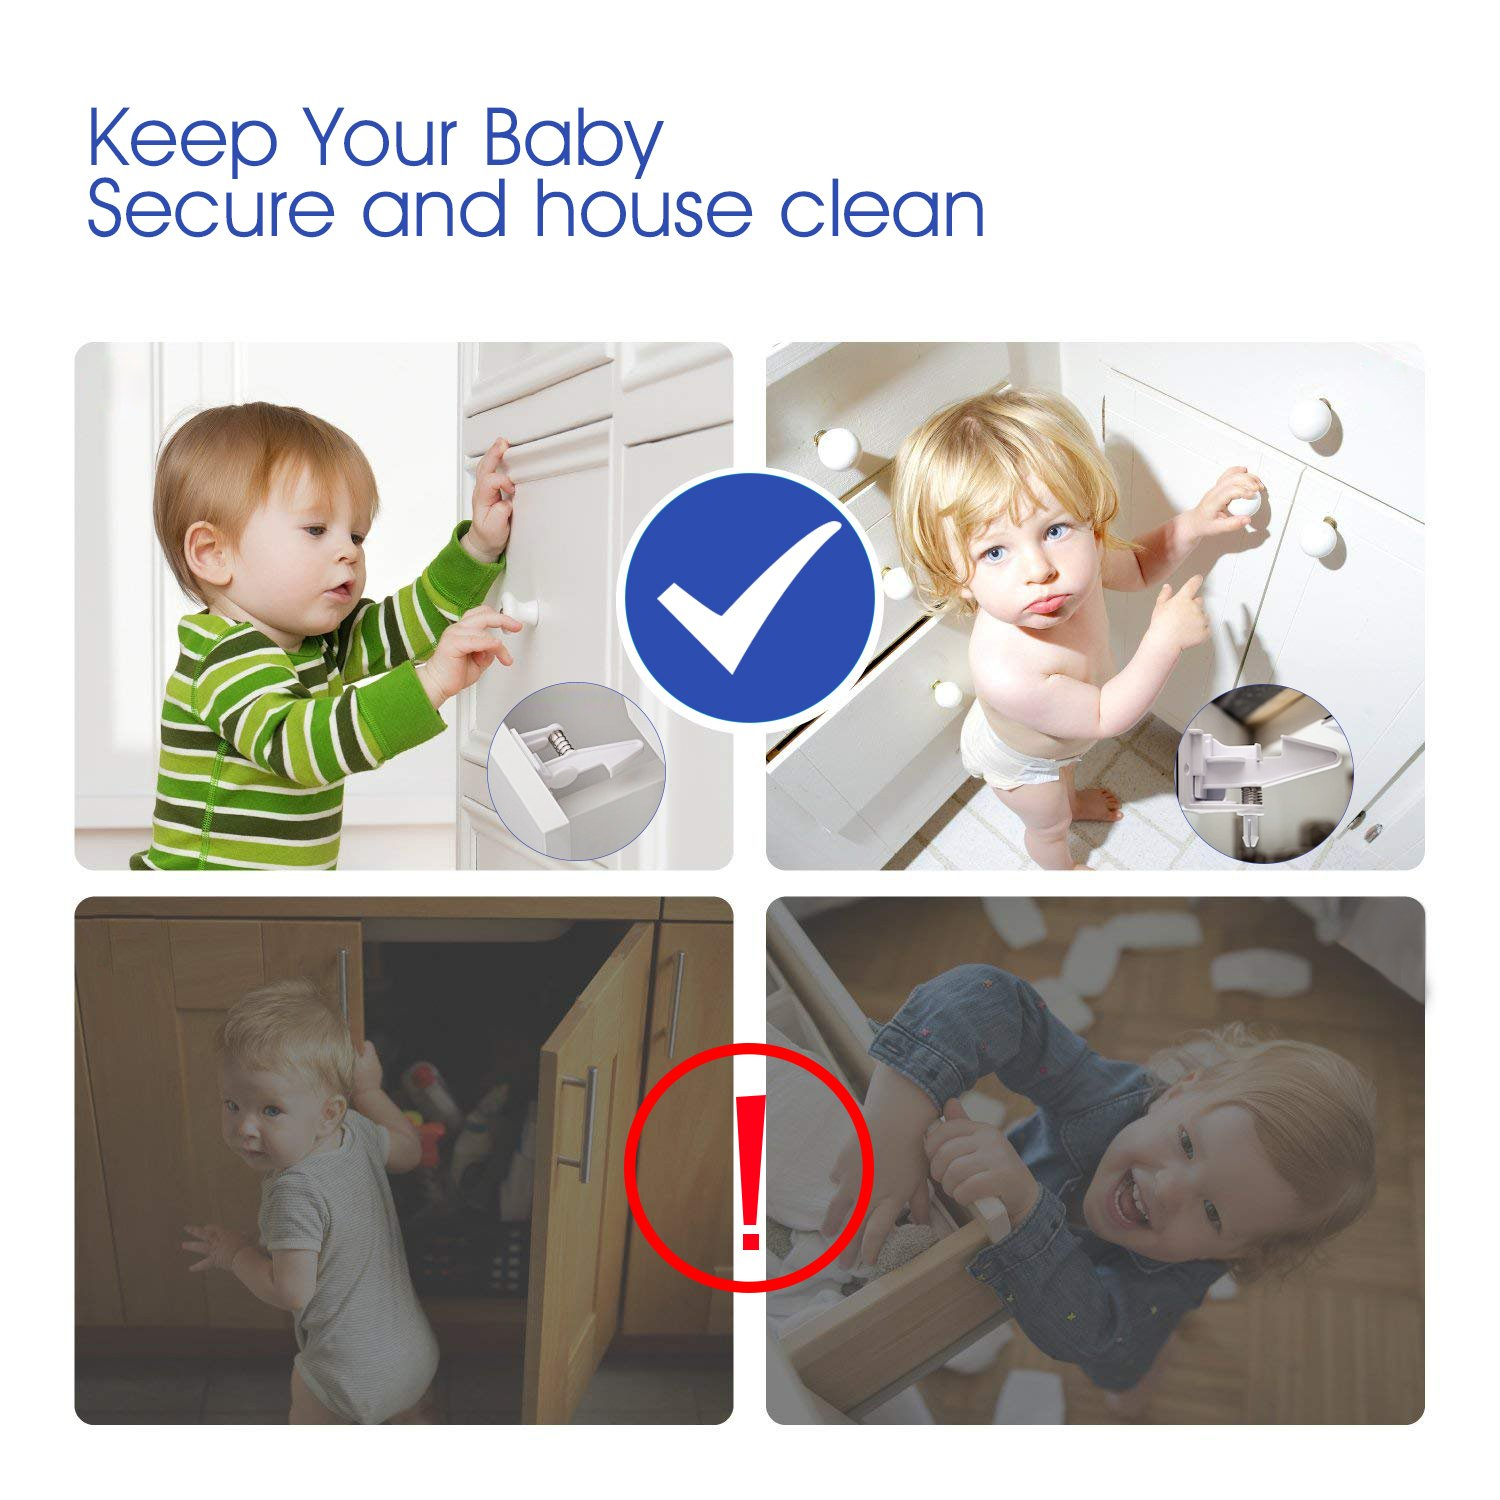 [10 Pack] Cabinet Locks Child Safety, Upgraded Baby Cabinet Safety Latches, No Tools Required, Invisible Design, Works for Most Cabinets, Drawers, Closets by AOSTAR (Image #2)